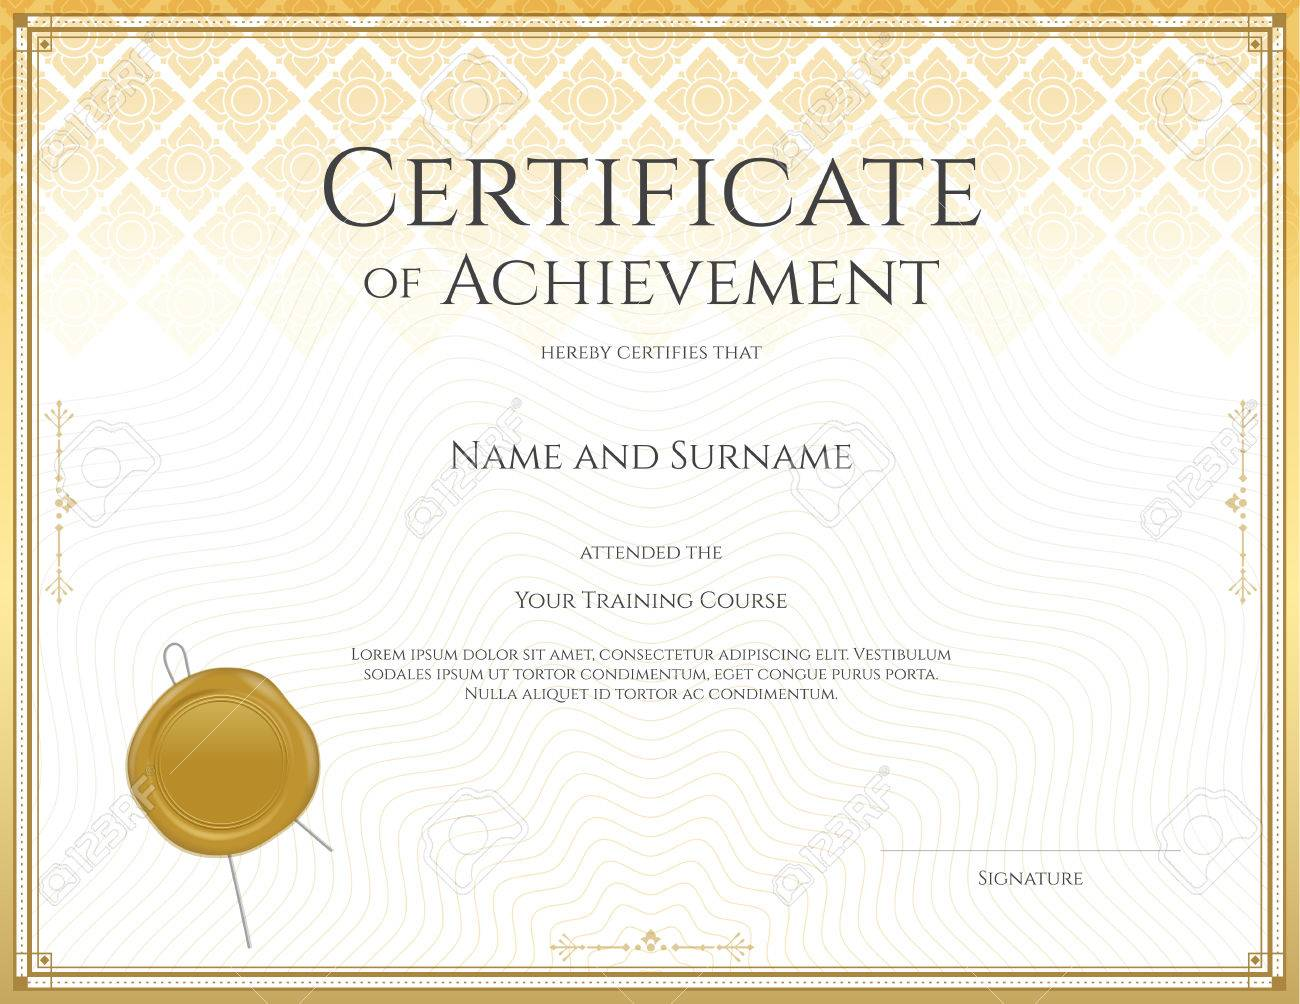 Certificate template for achievement appreciation participation certificate template for achievement appreciation participation or completion in applied thai art line theme yelopaper Image collections